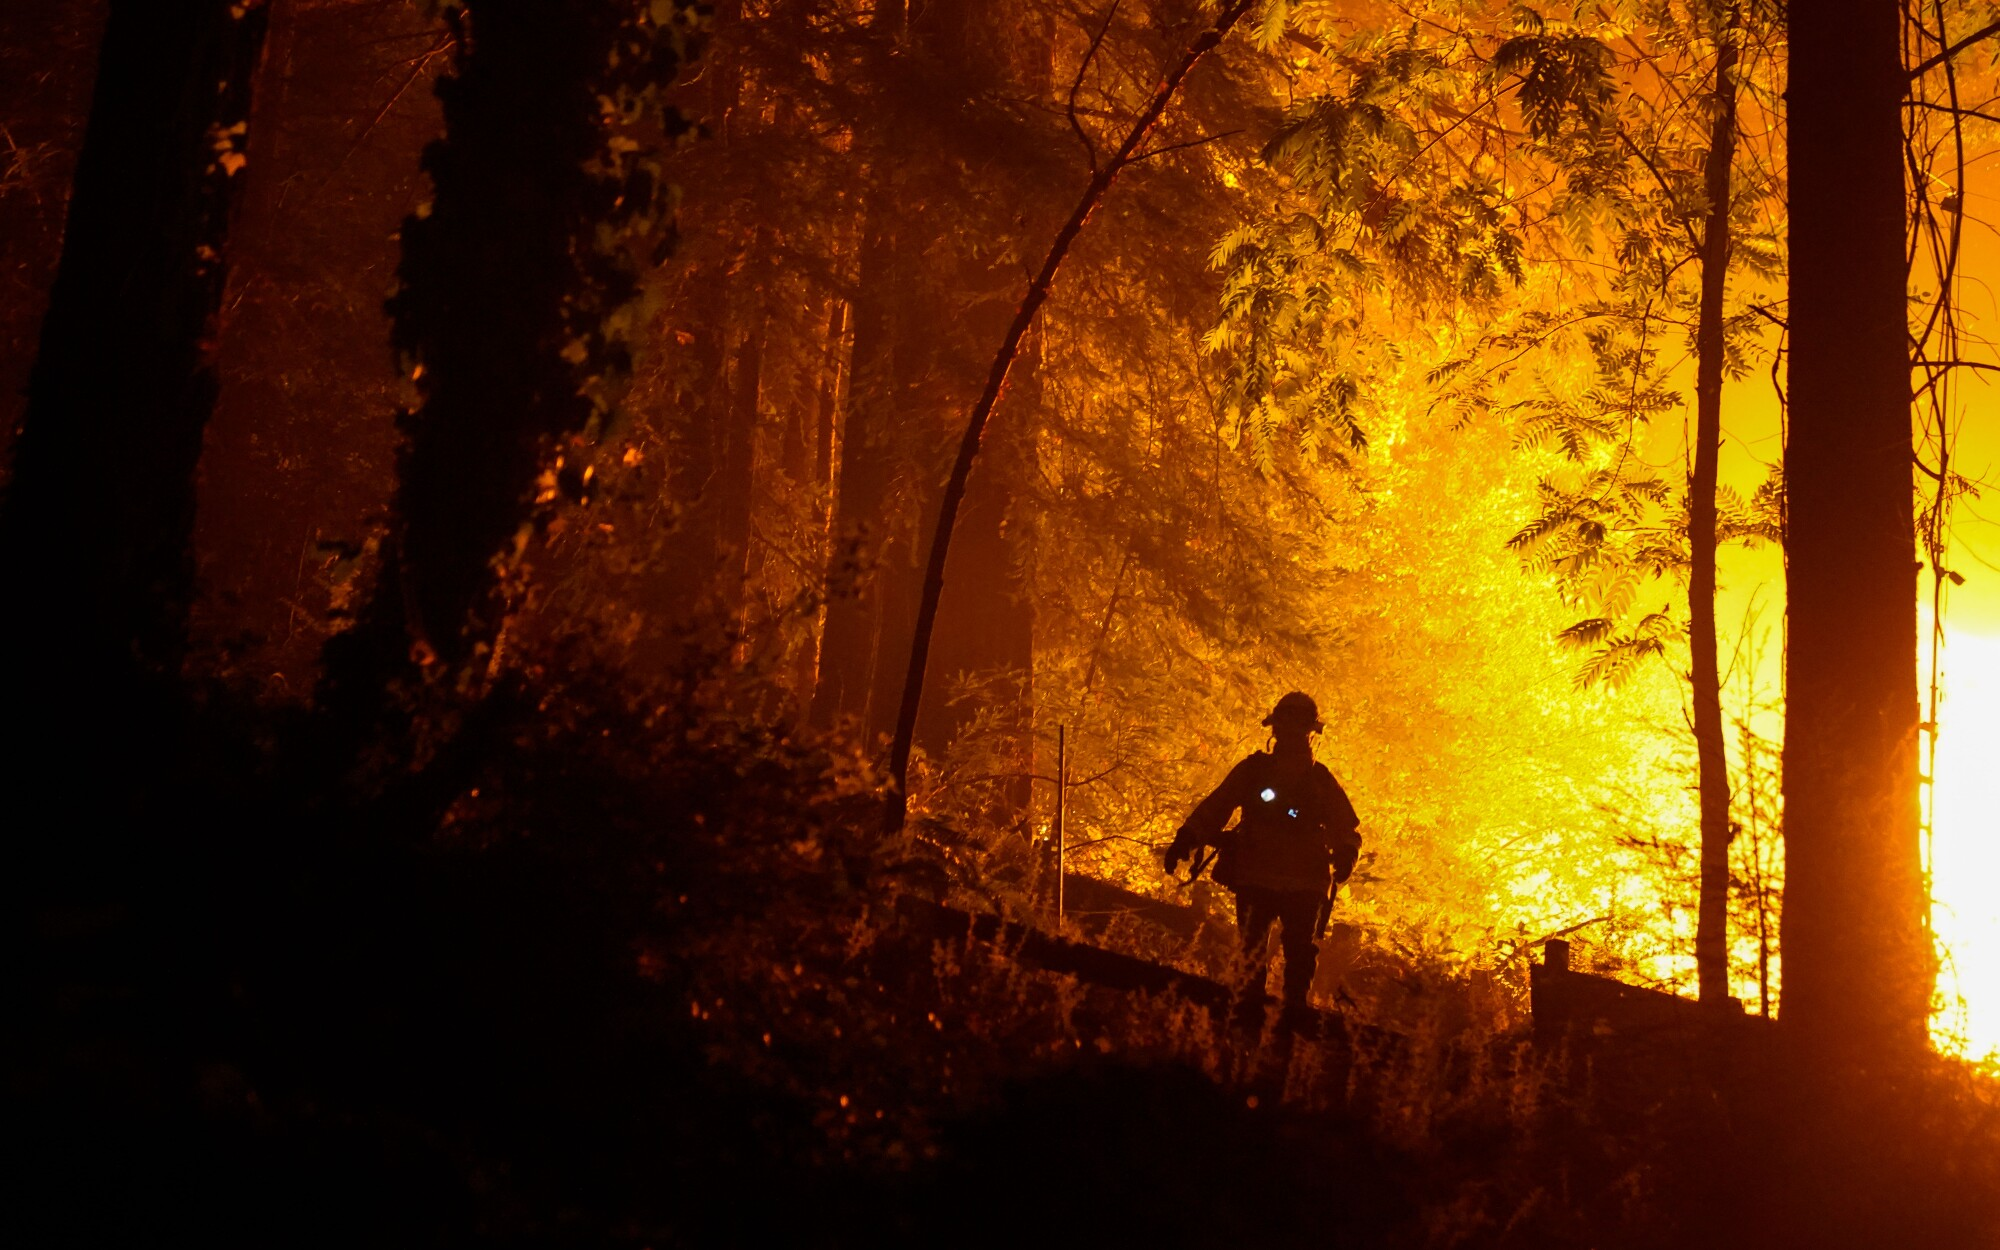 A firefighter silhouetted by fire in a forest